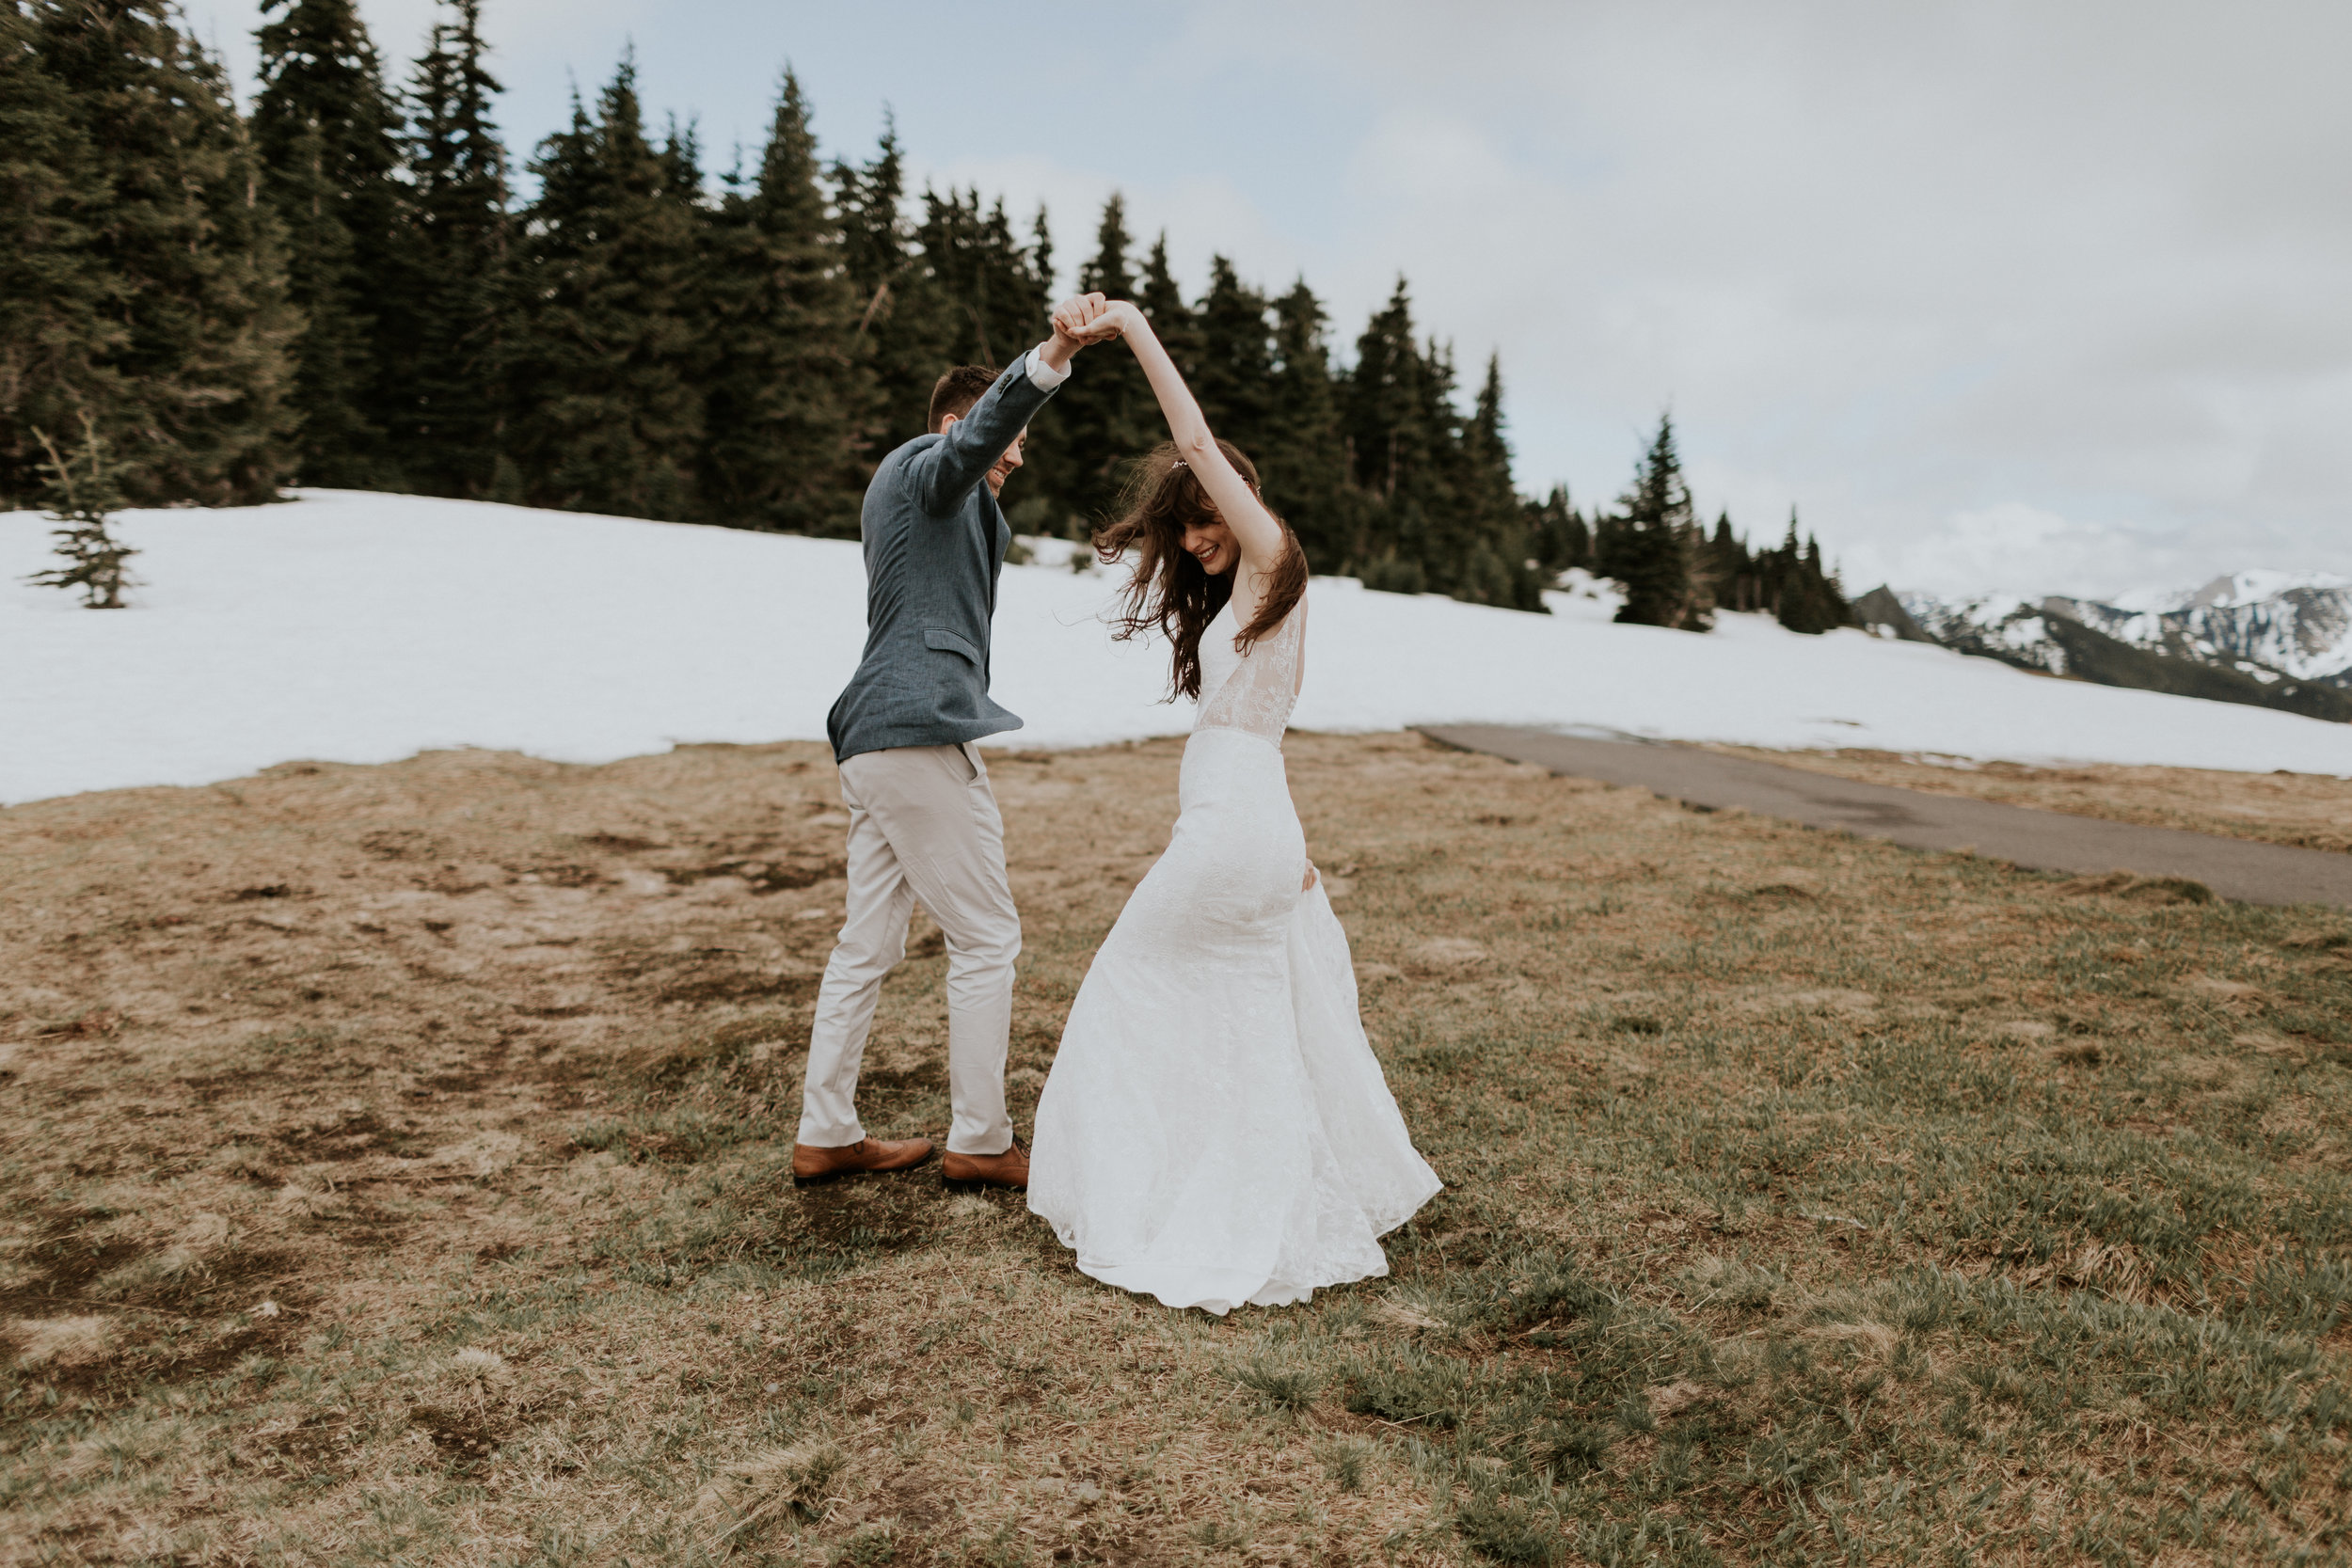 PNW-elopement-wedding-engagement-olympic national park-port angeles-hurricane ridge-lake crescent-kayla dawn photography- photographer-photography-kayladawnphoto-191.jpg